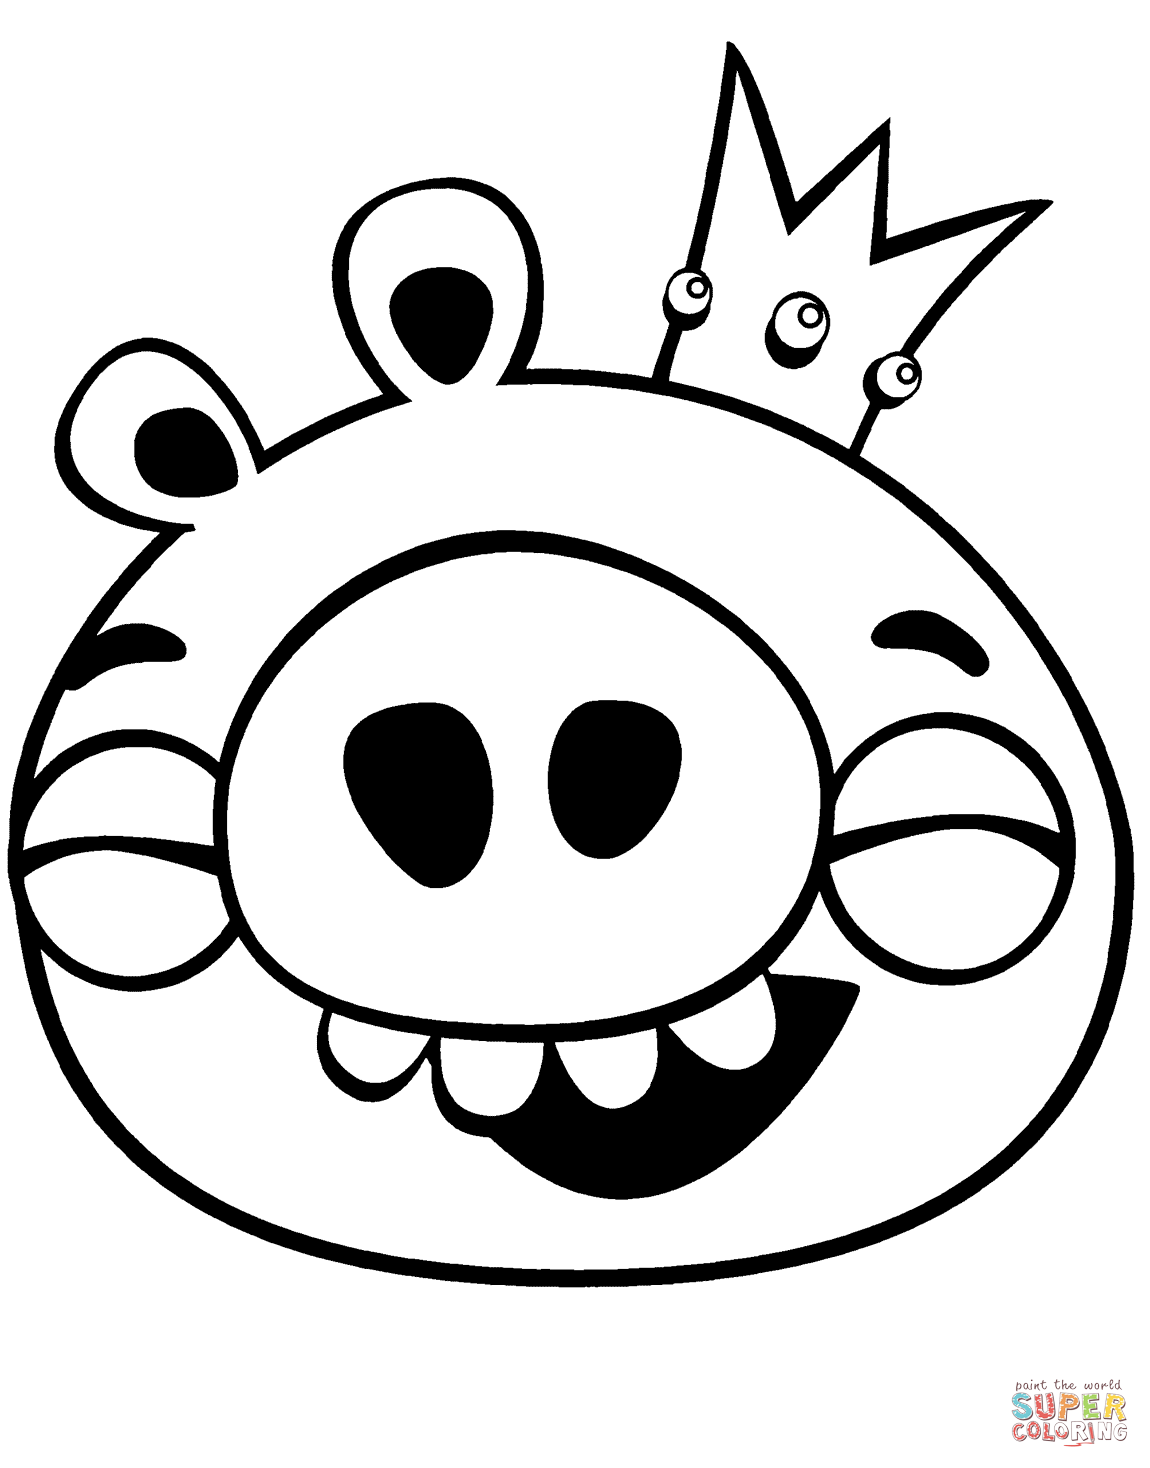 Flying Pigs Coloring Pages At Getcolorings